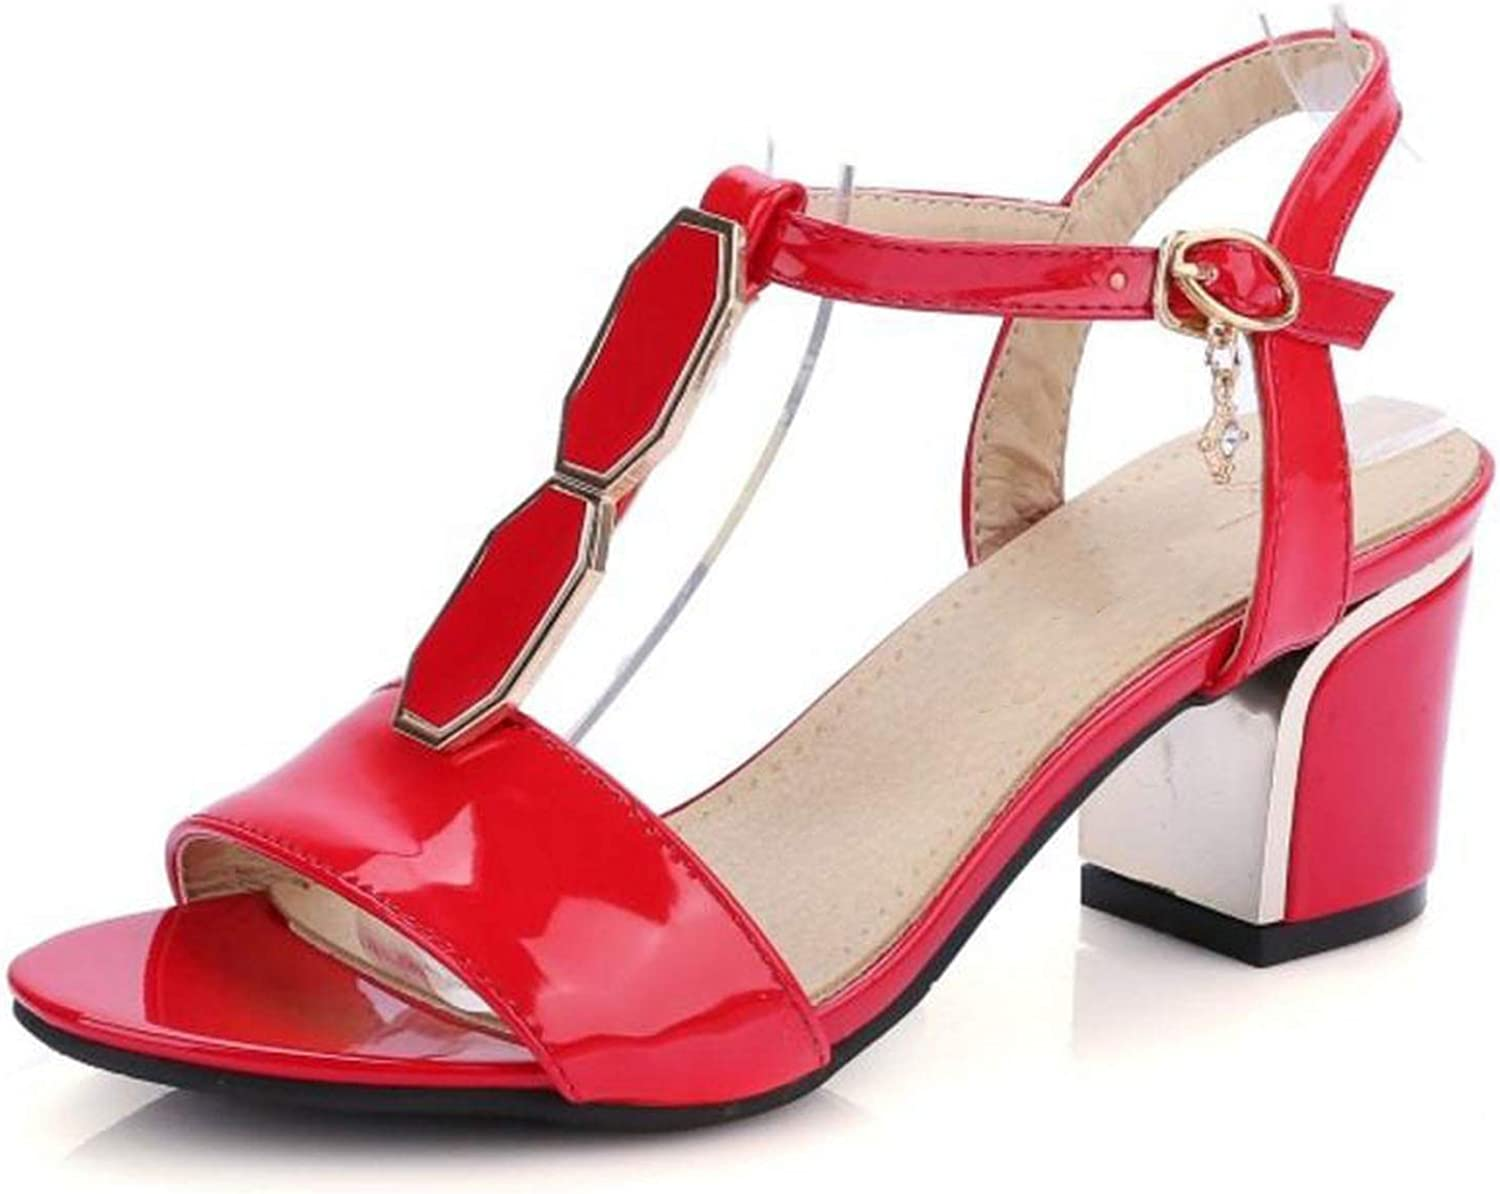 Fairly shoes Squared Heels Thin Belt Patent Leather Summer shoes Fashion Sexy shoes,Red,7